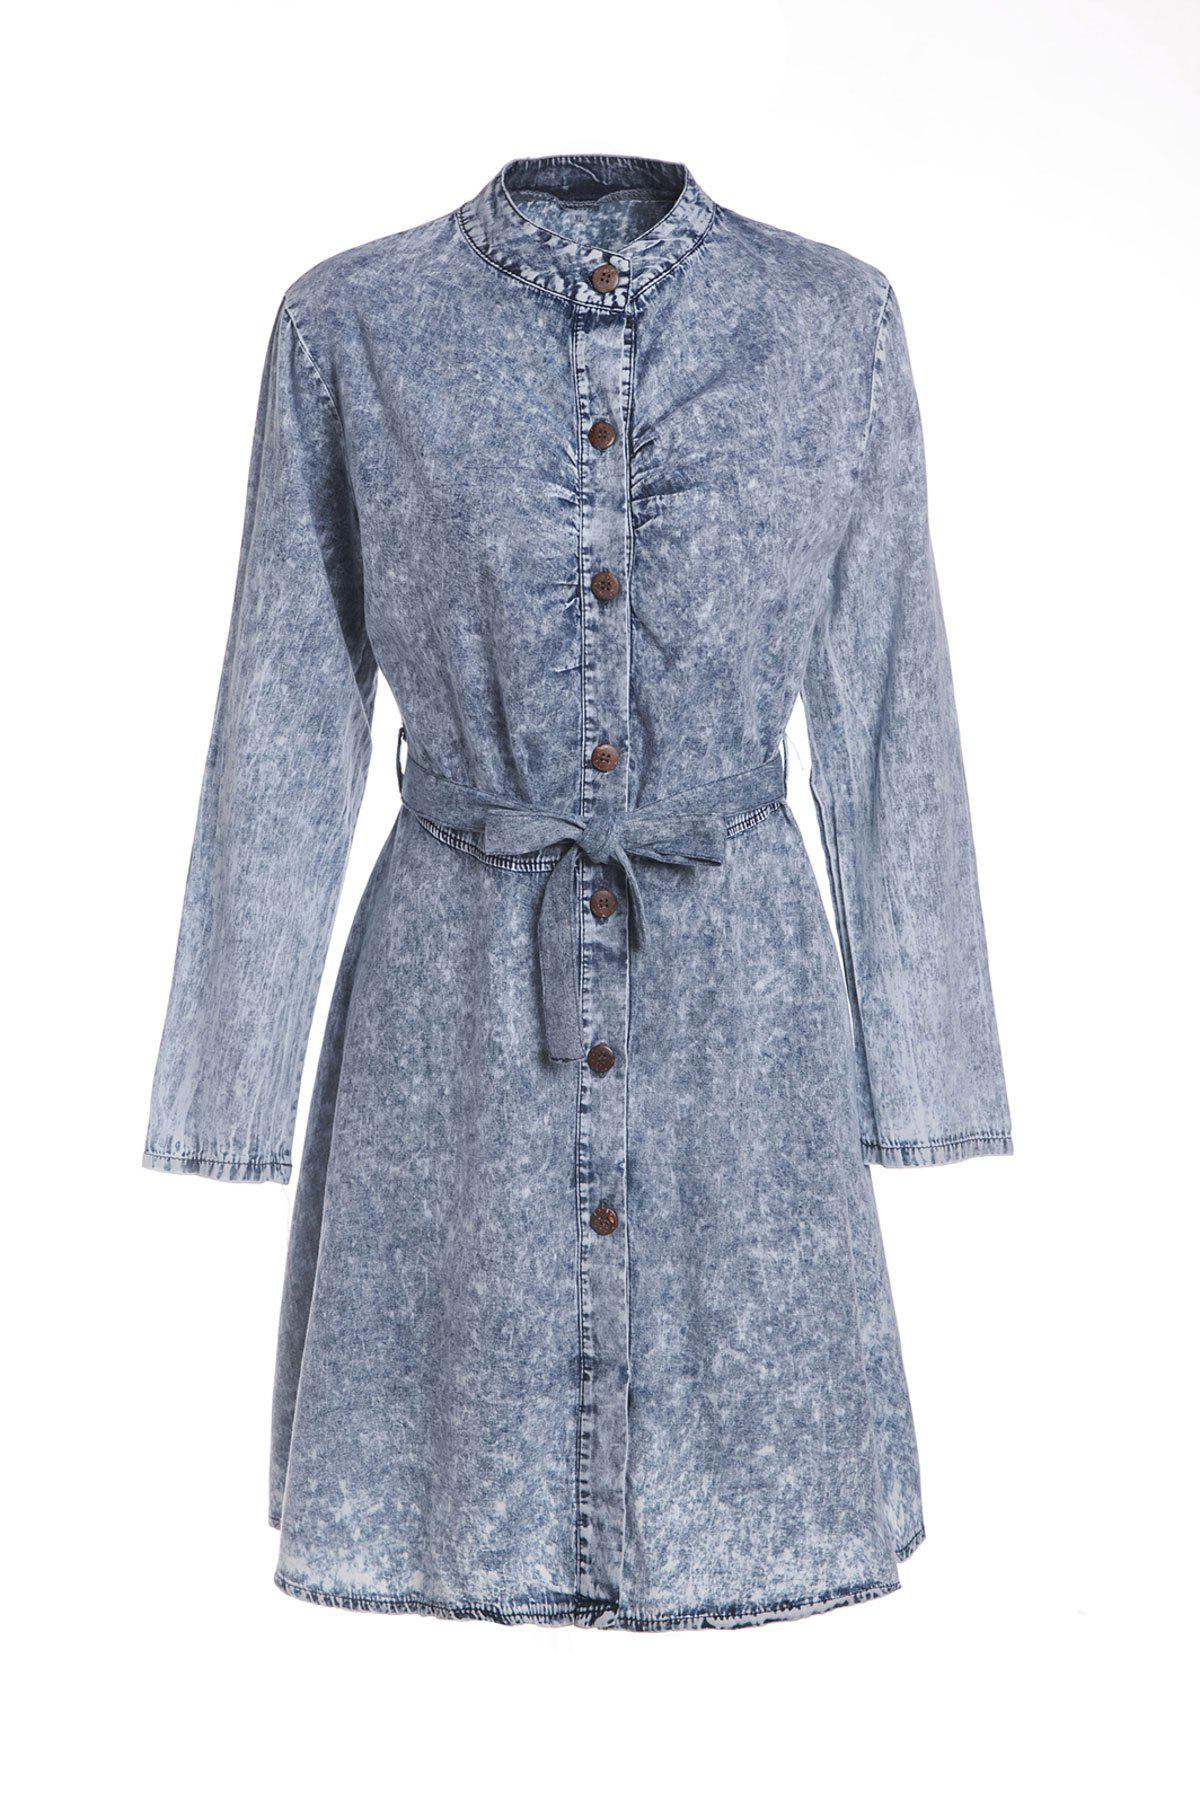 Stylish Self-Tie Long Sleeve Stand-Up Collar Women's Denim Dress - AS THE PICTURE M